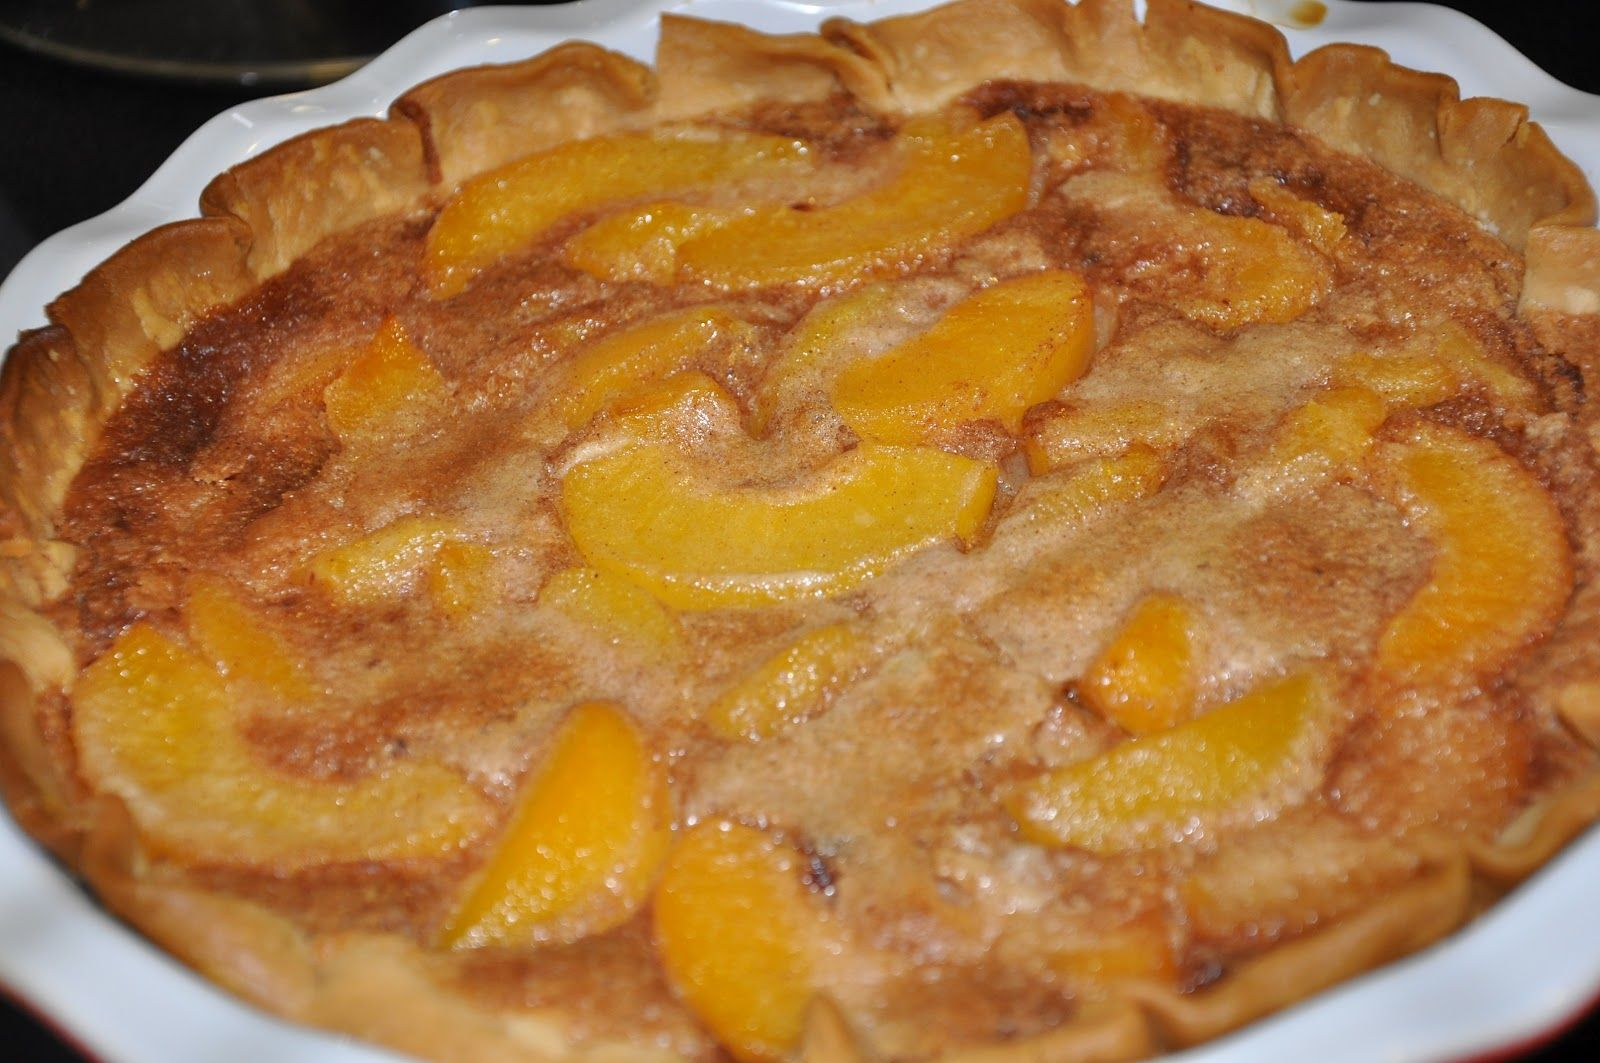 Buttermilk Peach Pie Delicious Pies Peach Pie Favorite Recipes